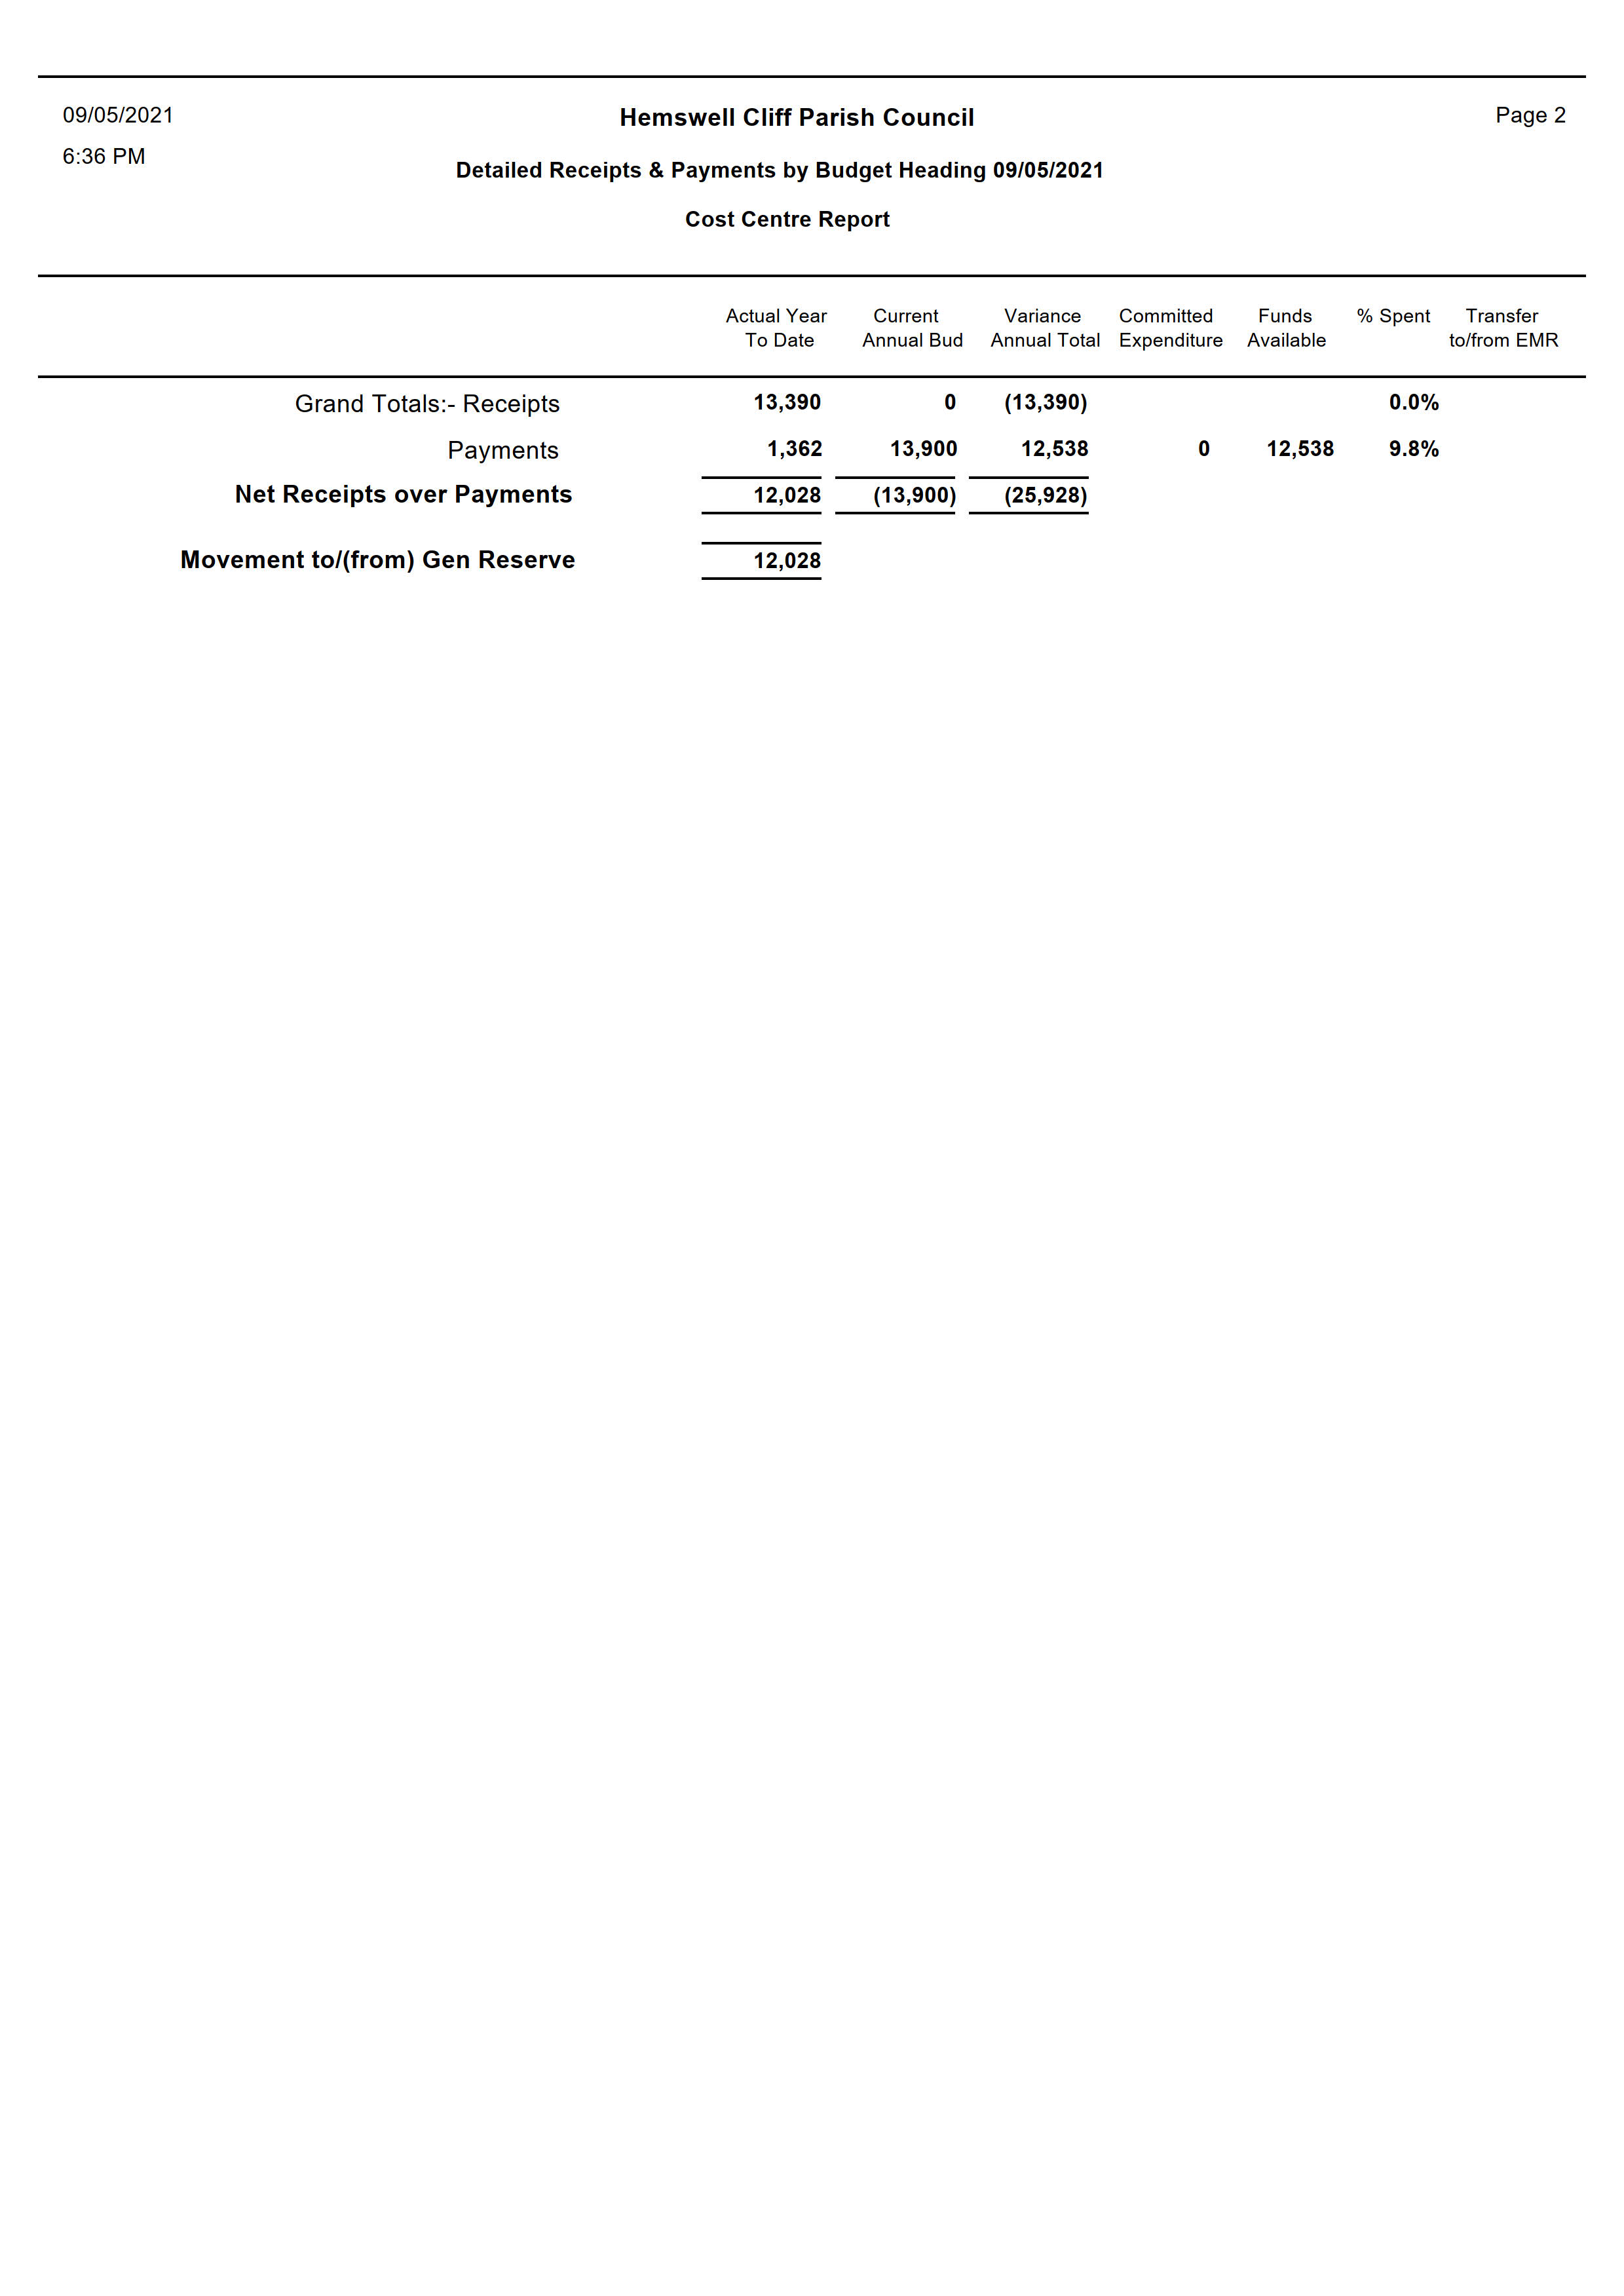 Detailed_Receipts___Payments_by_Budget_Heading_09_05_2021_2.jpg